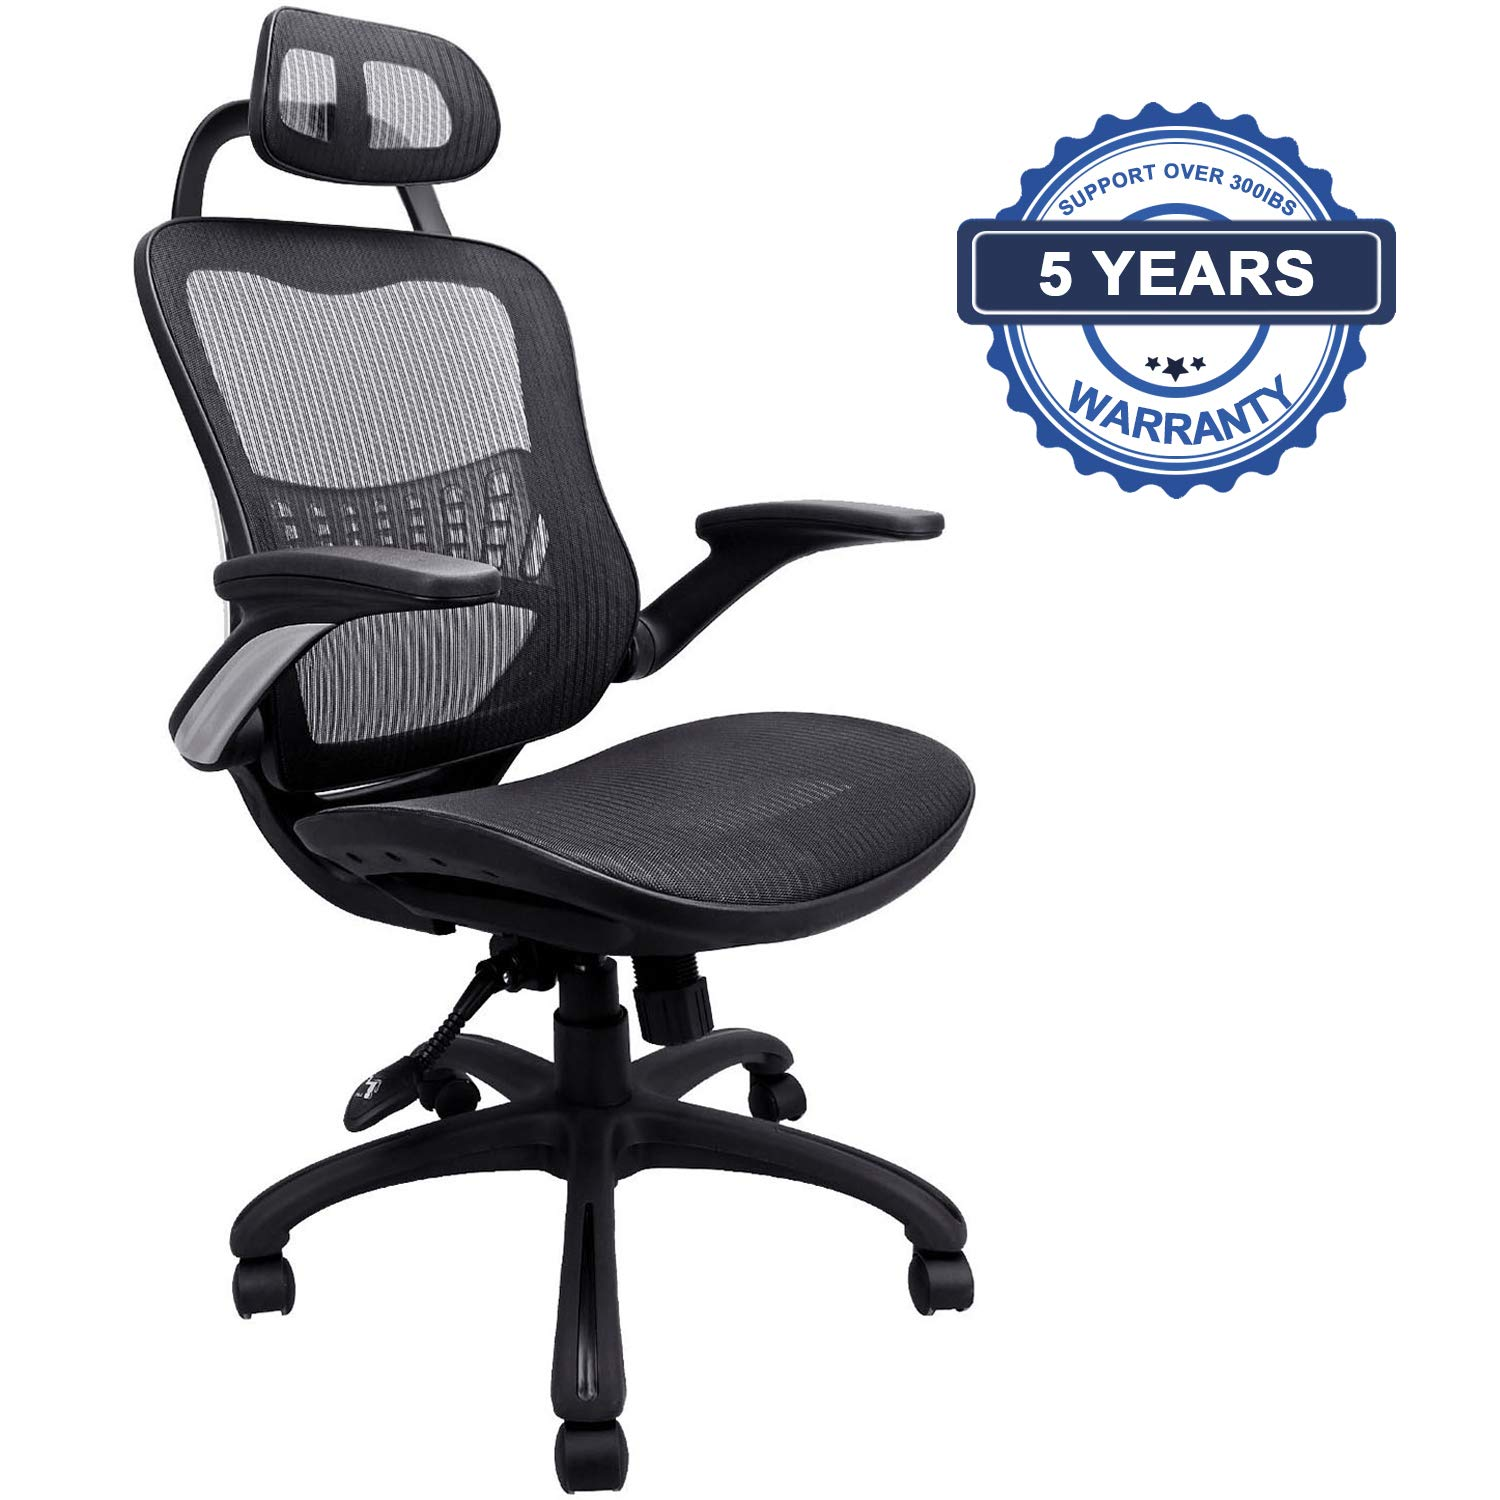 Ergonomic Office Chair: Passed BIFMA/SGS Weight Support Over 300Ibs,Breathable Mesh Cushion &High Back - Executive Chairs with Adjustable Head& Backrest,Flip-up Armrests,360-Degree Swivel Chair by Komene (Image #1)